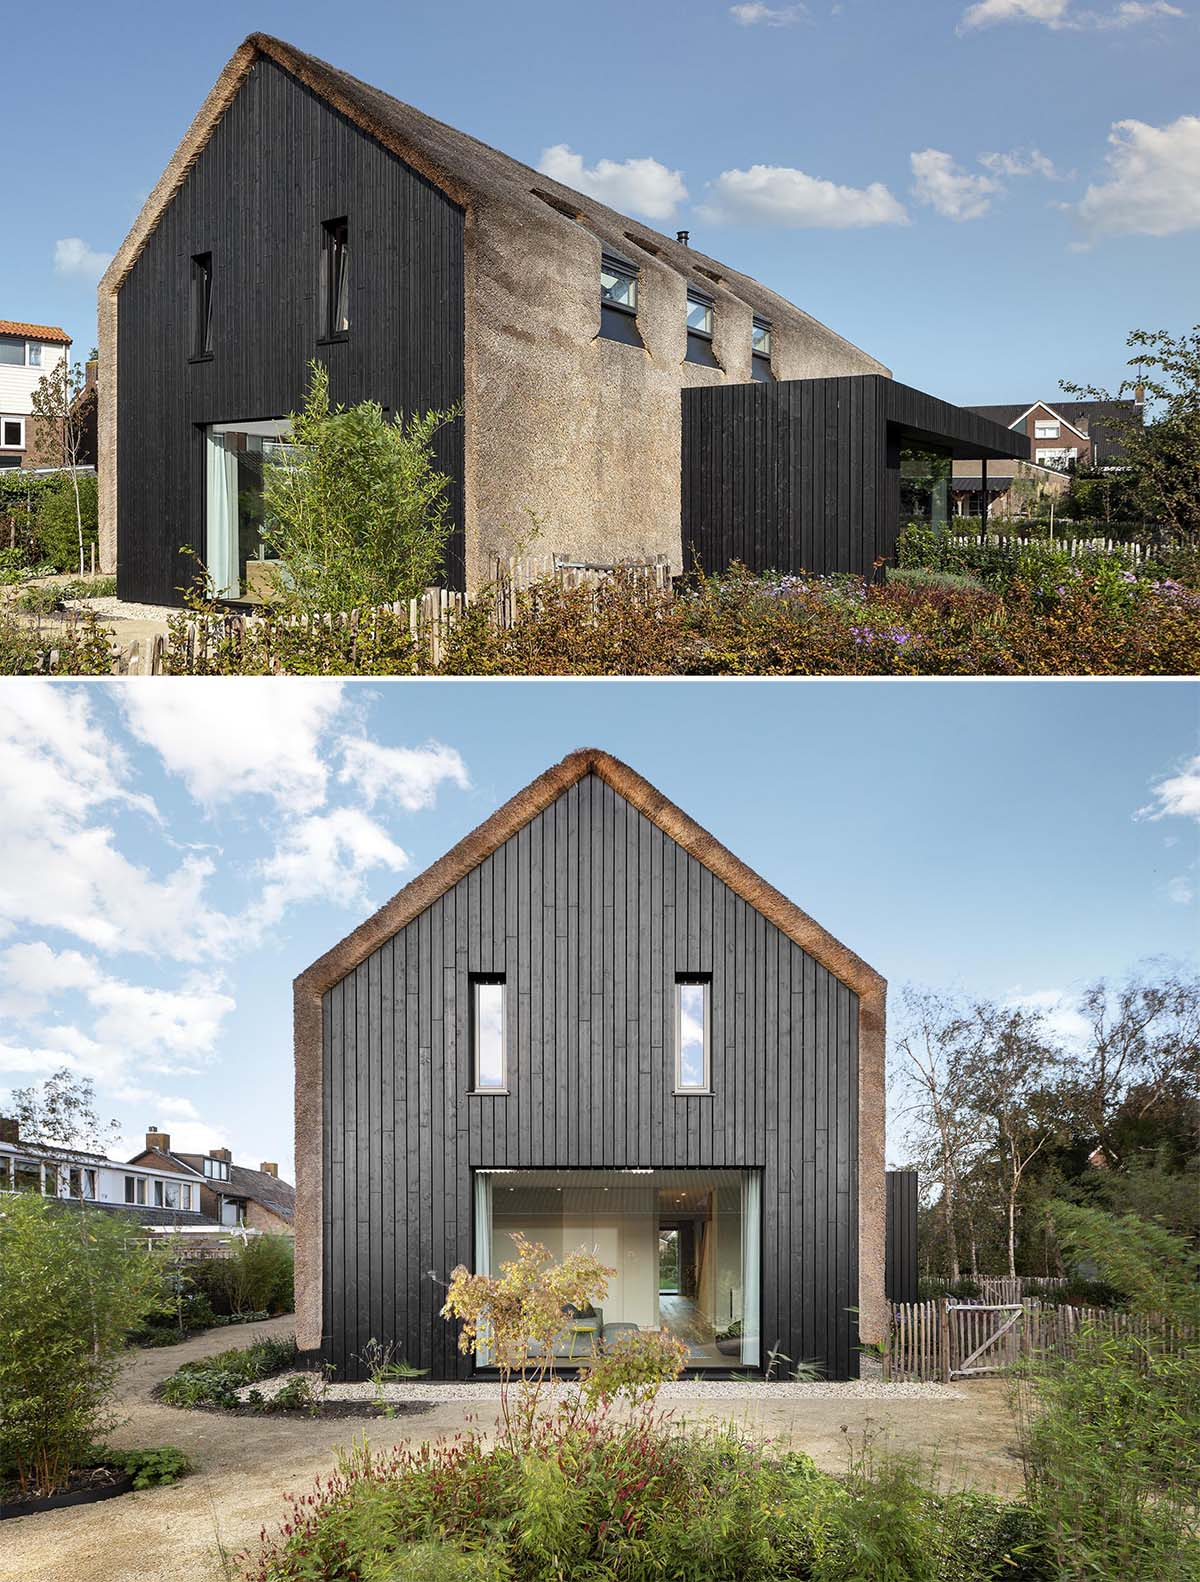 The exterior of this modern house is covered in thatch, which runs vertically down from the rooftop and along the sides of the house. The thatched roof is contrasted by wood with a black finish.